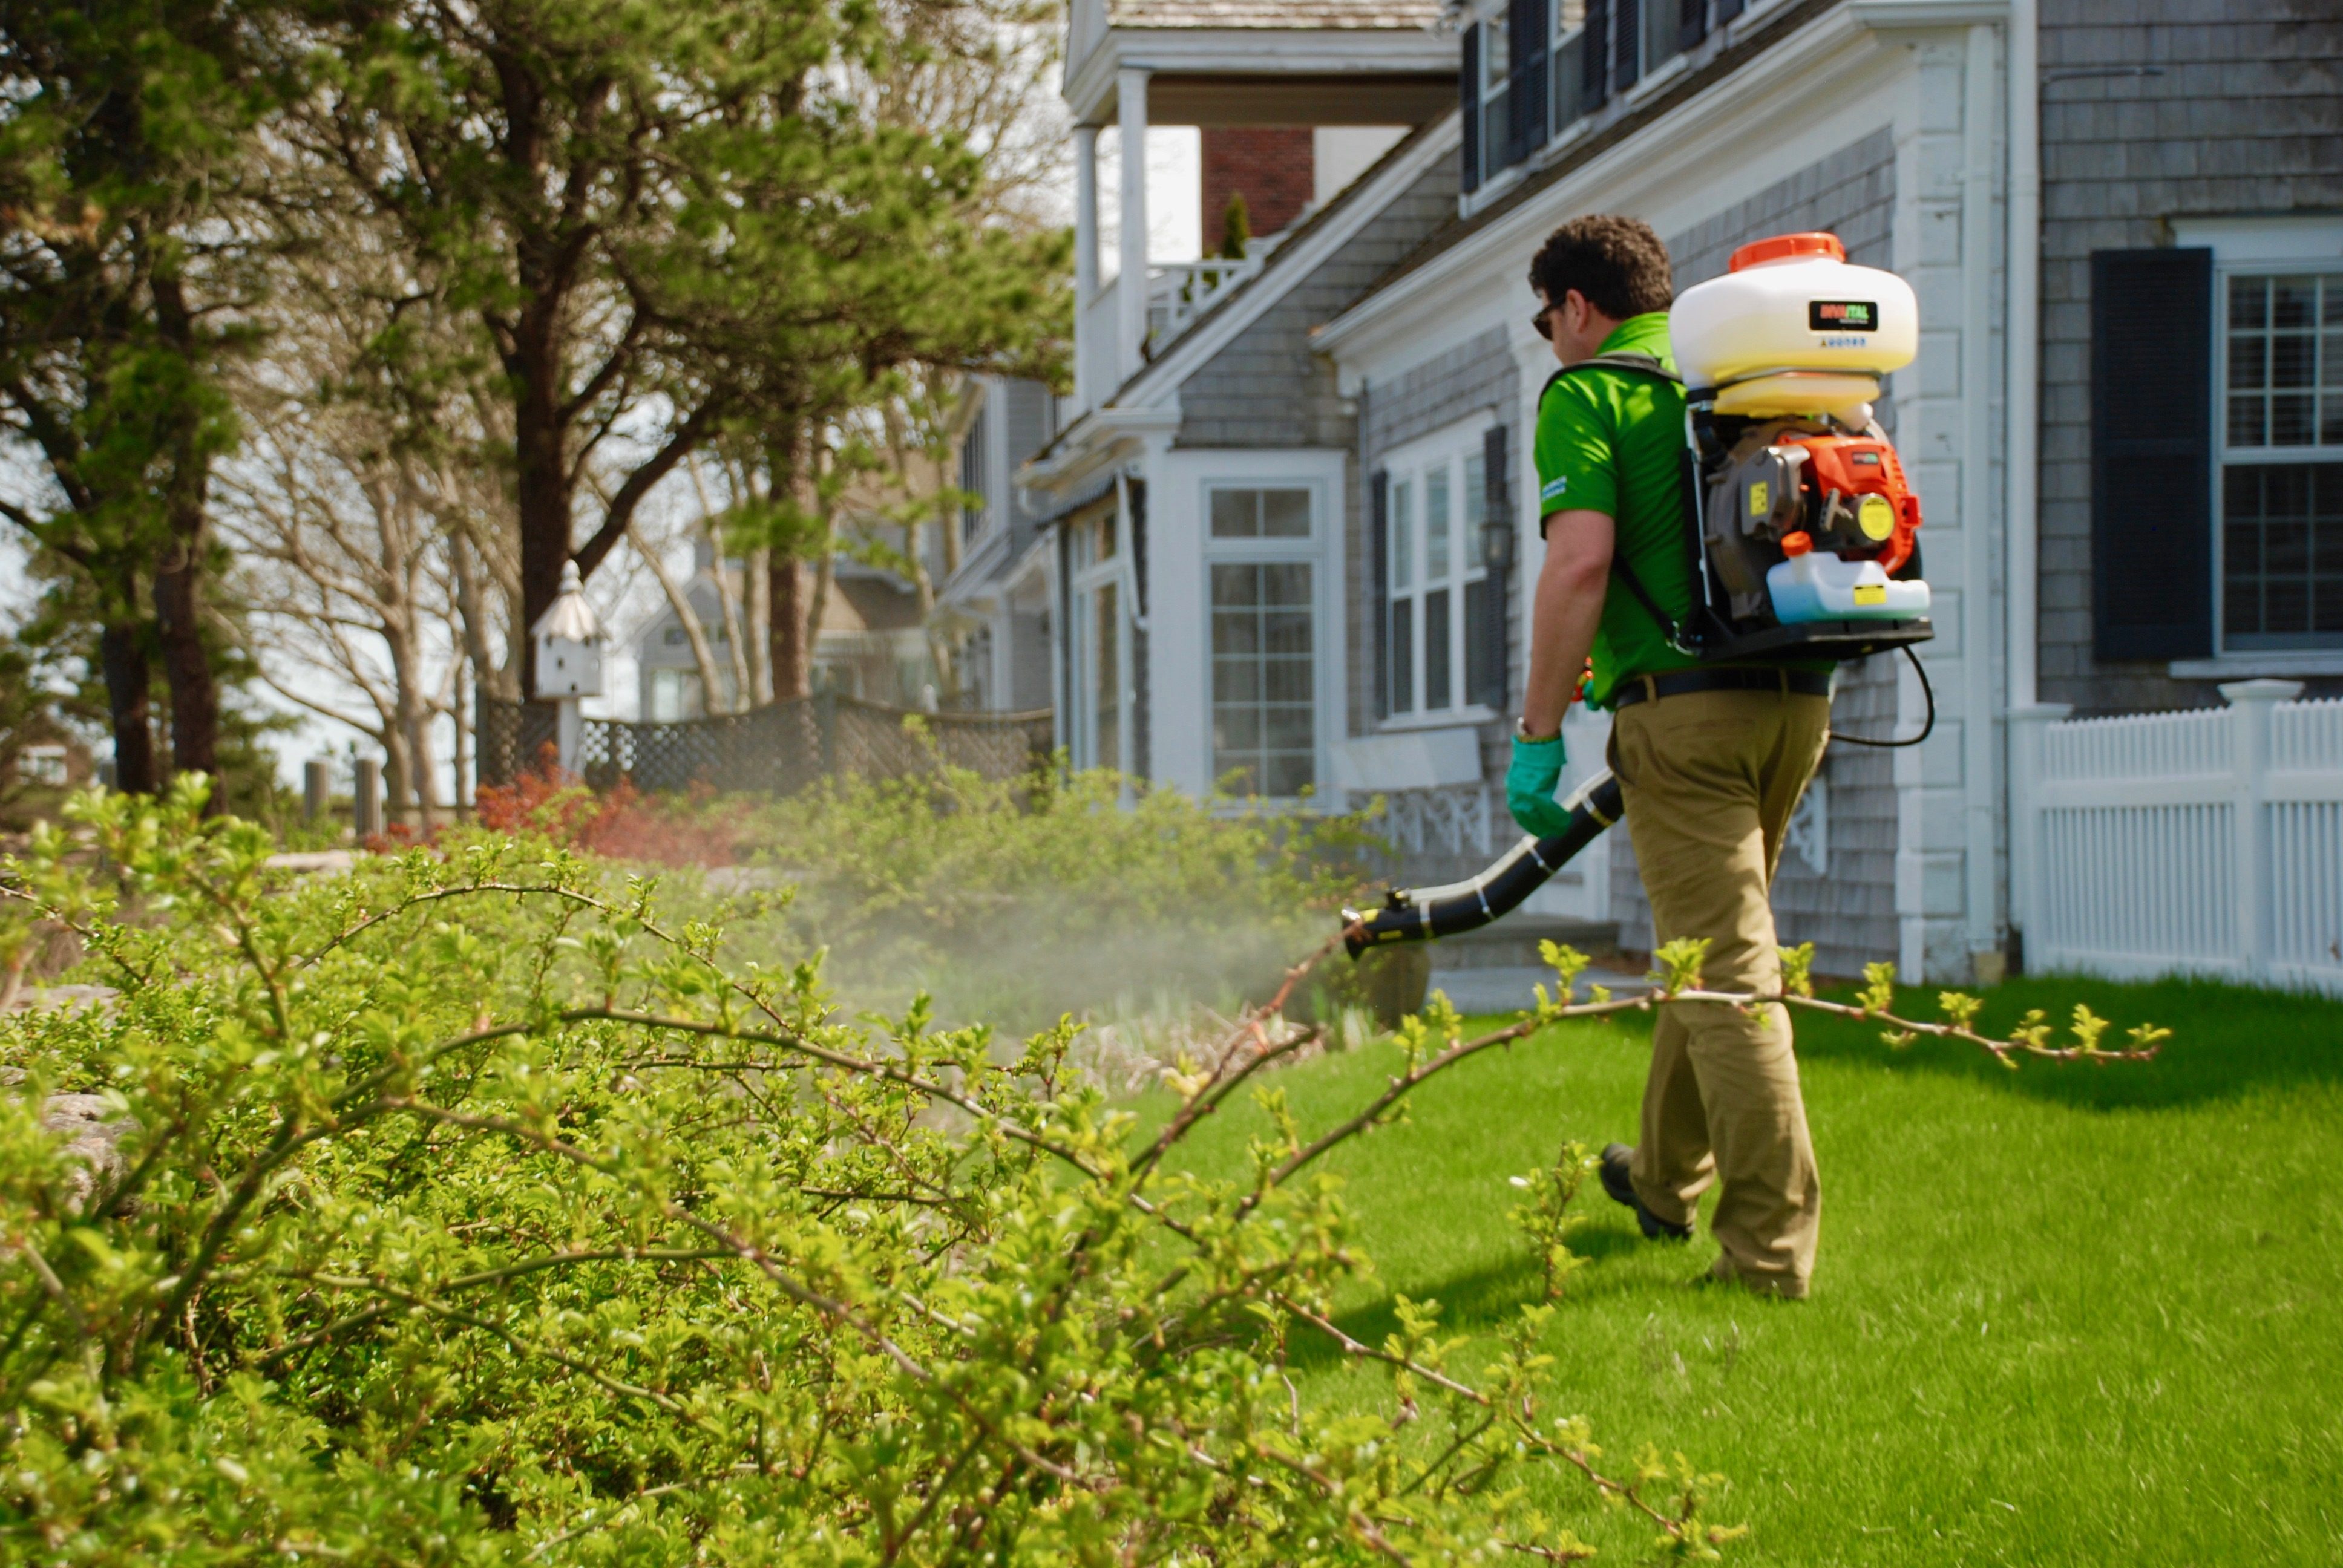 Outdoor pest control service in Cape Cod